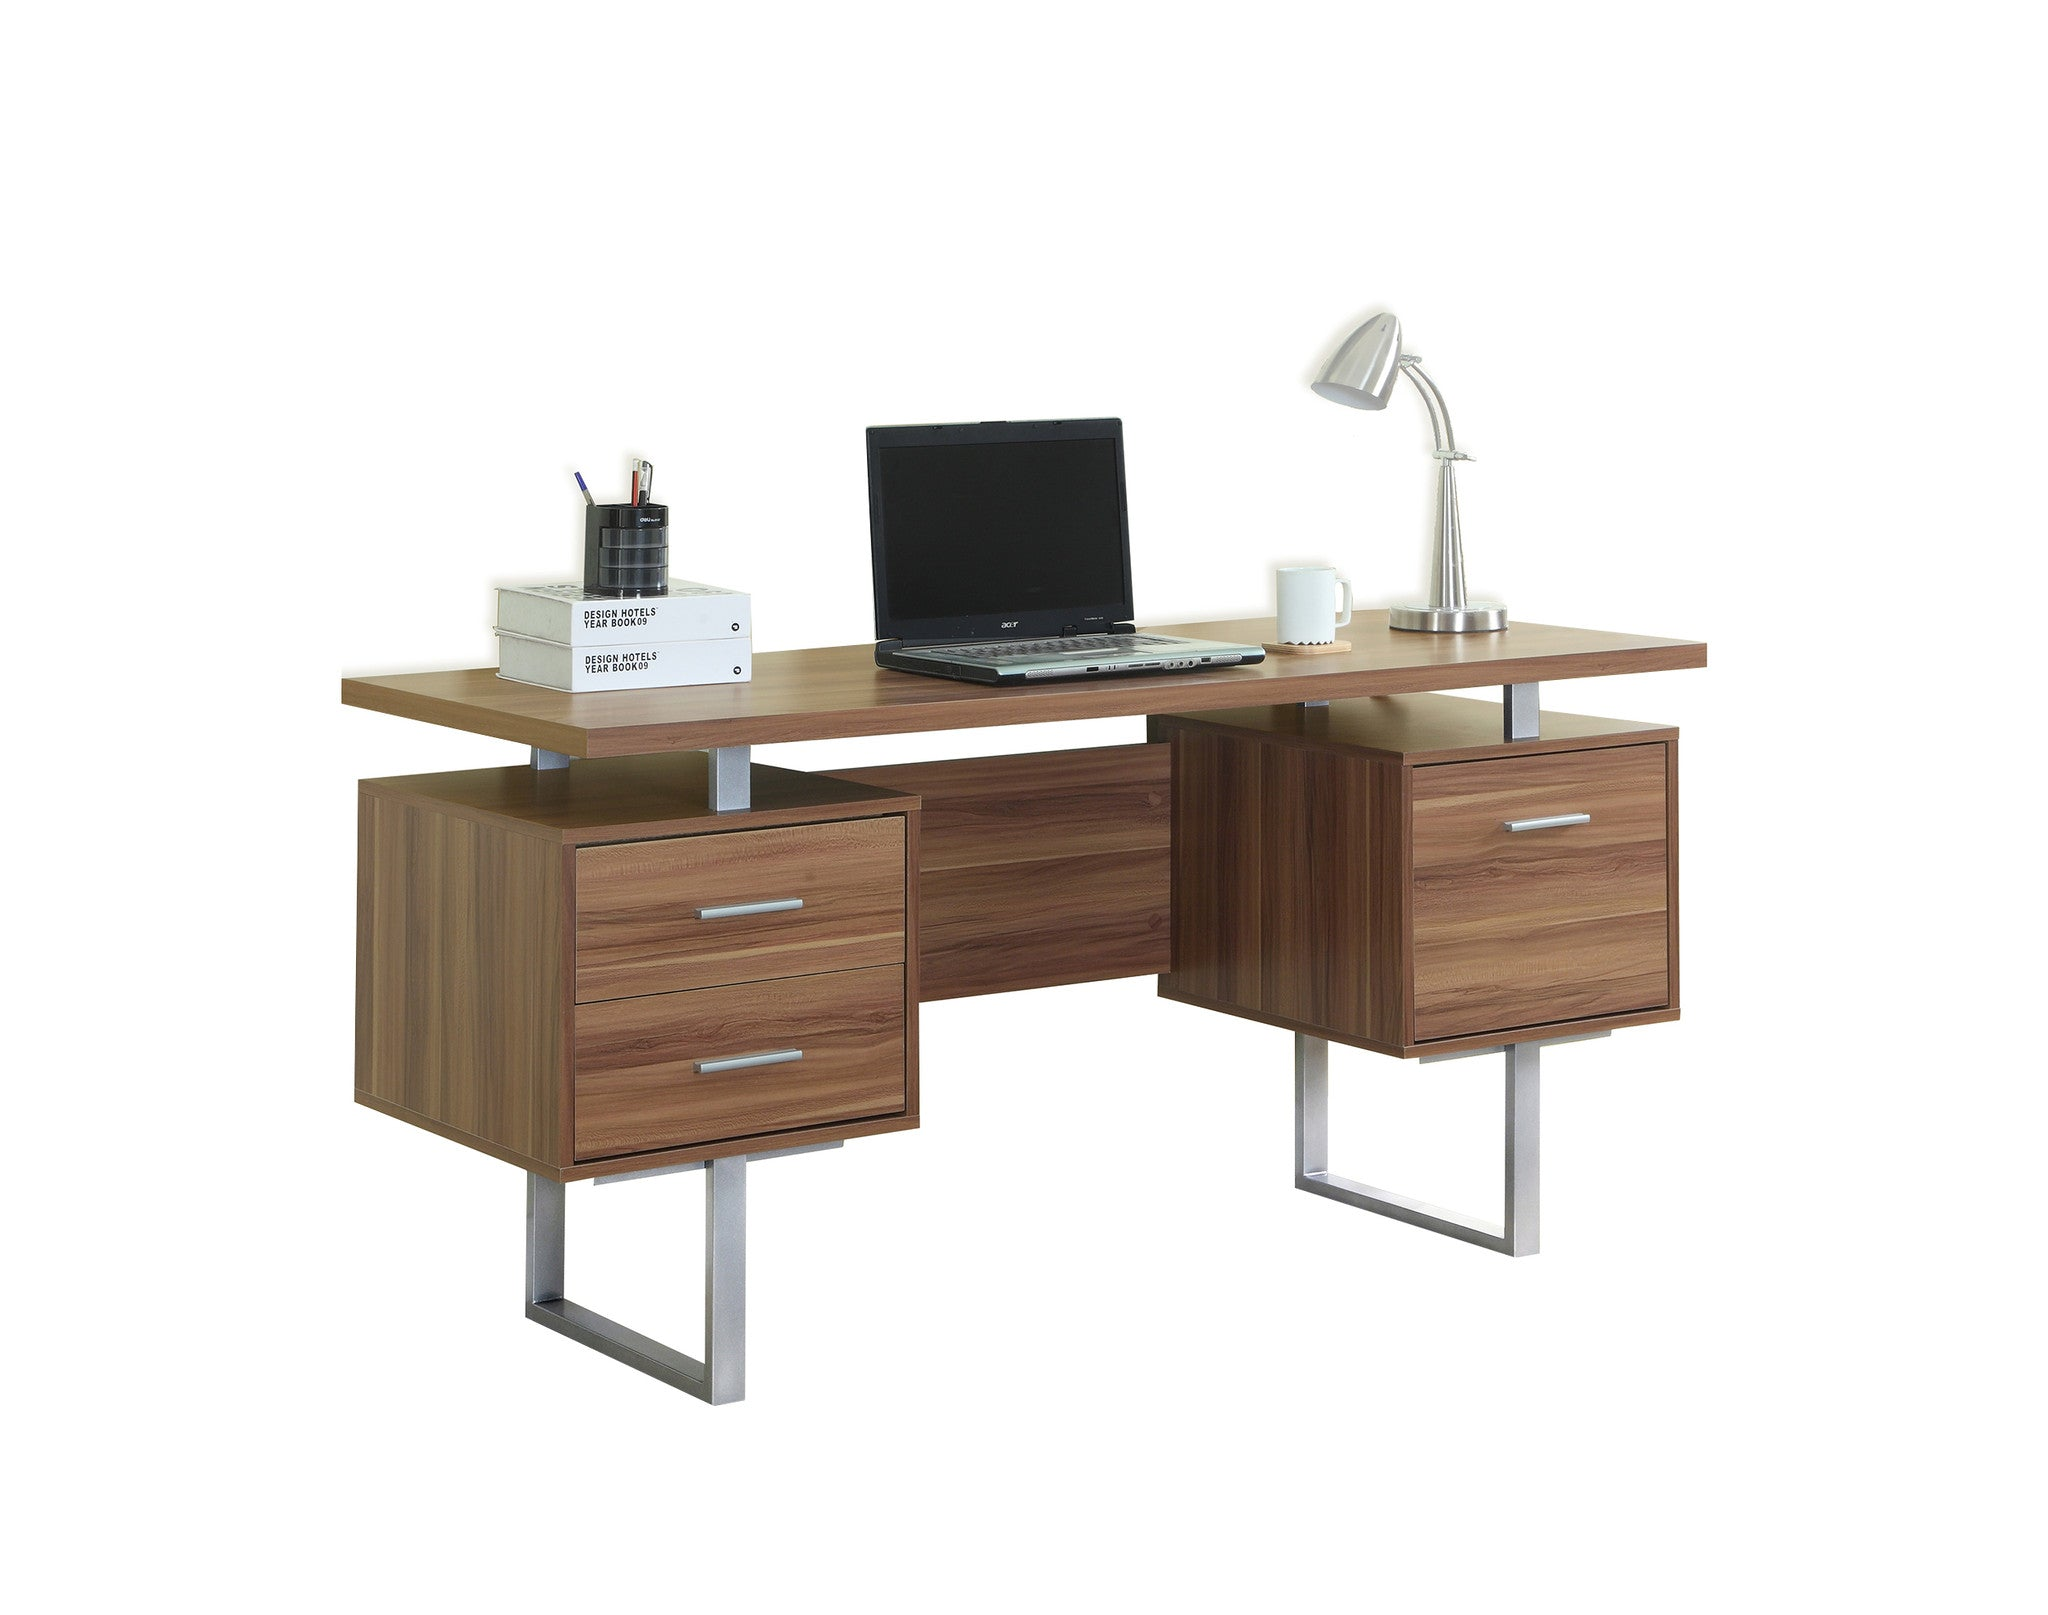 web desk drawers computer two humfrye products adams furniture with